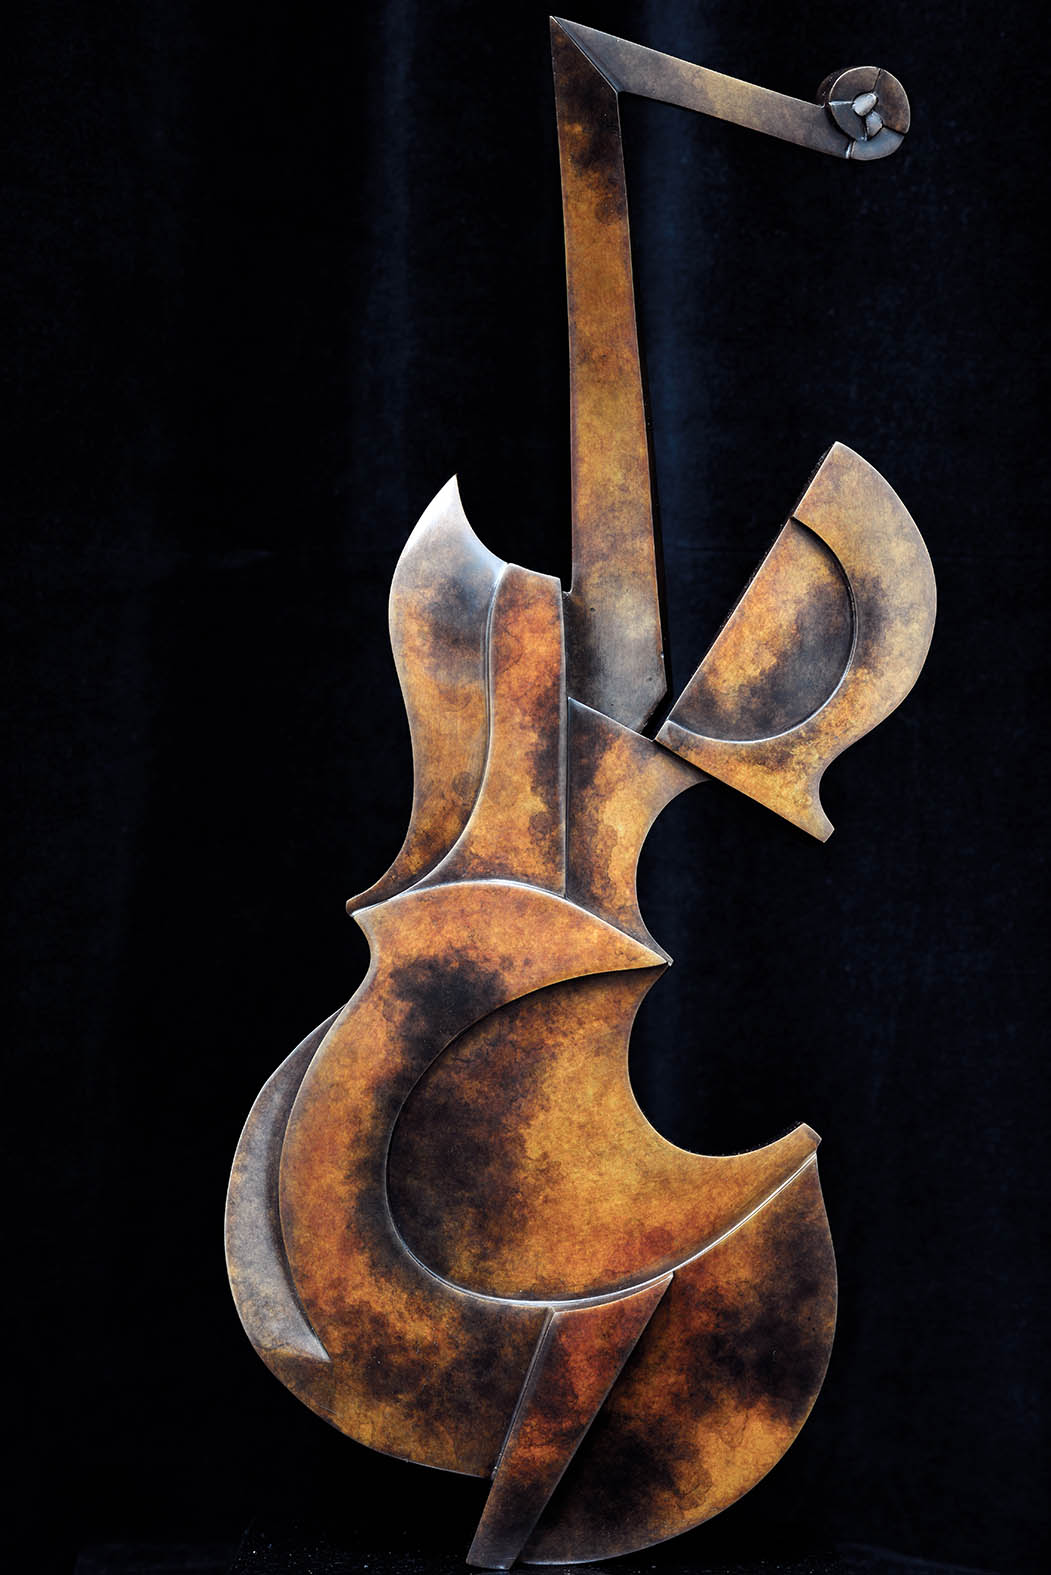 Violin by Andrew Thomas, from the Instrument series. Bronze